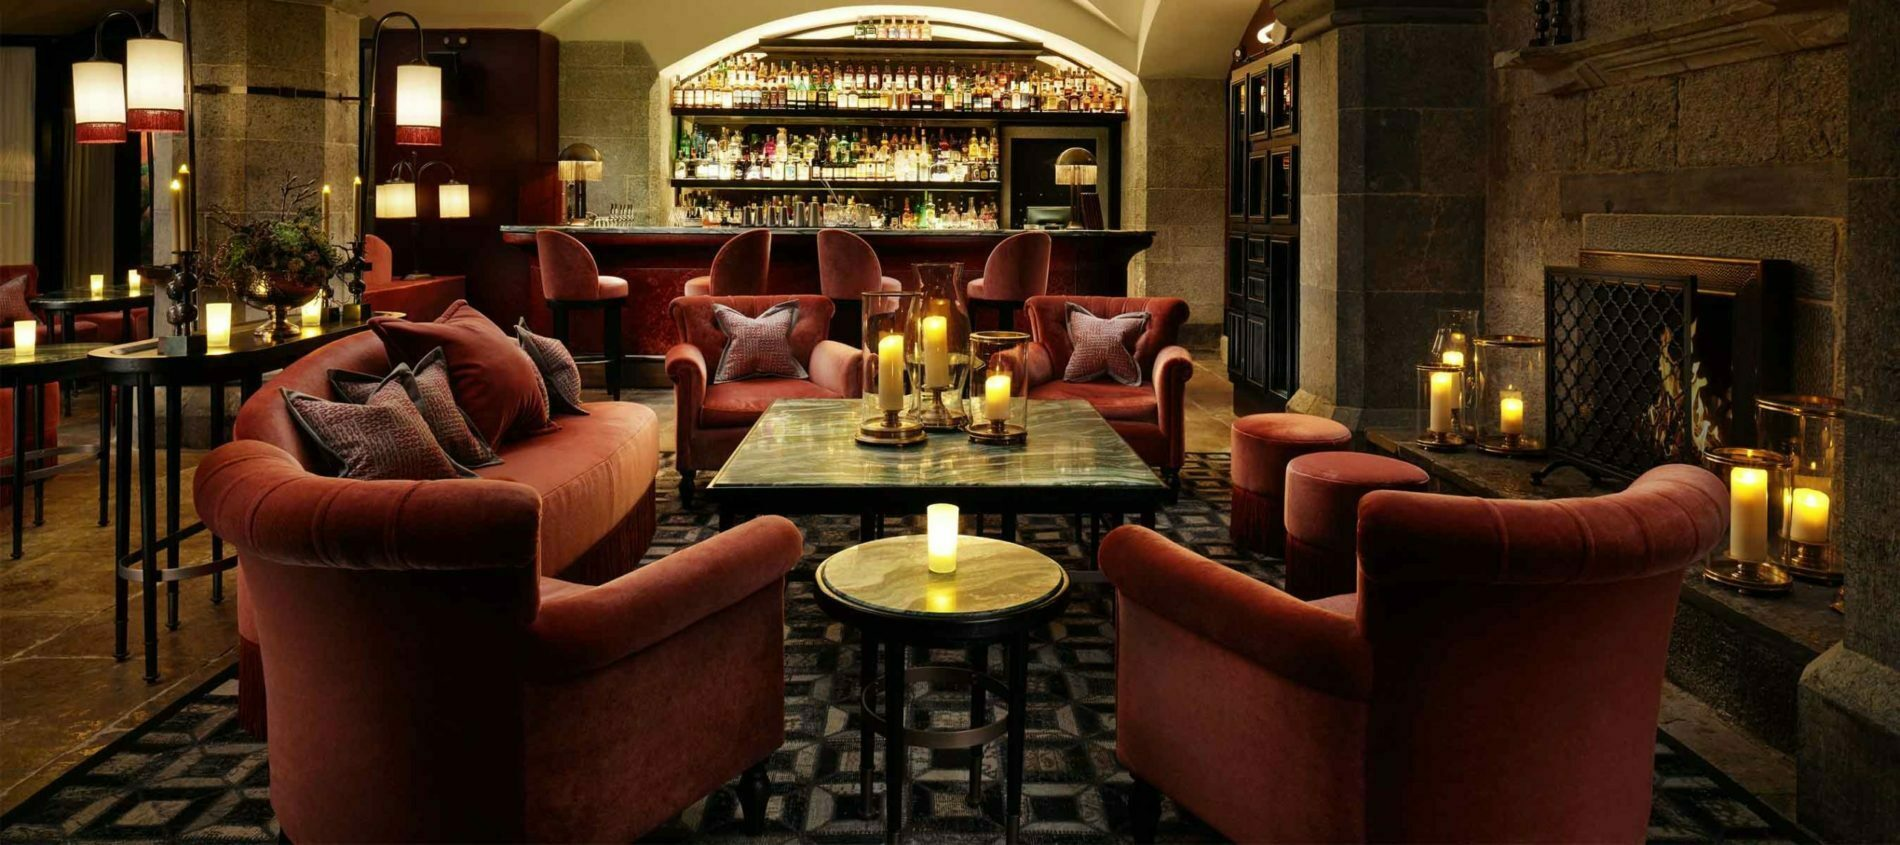 Wide angled candlelit bar with red soft furniture